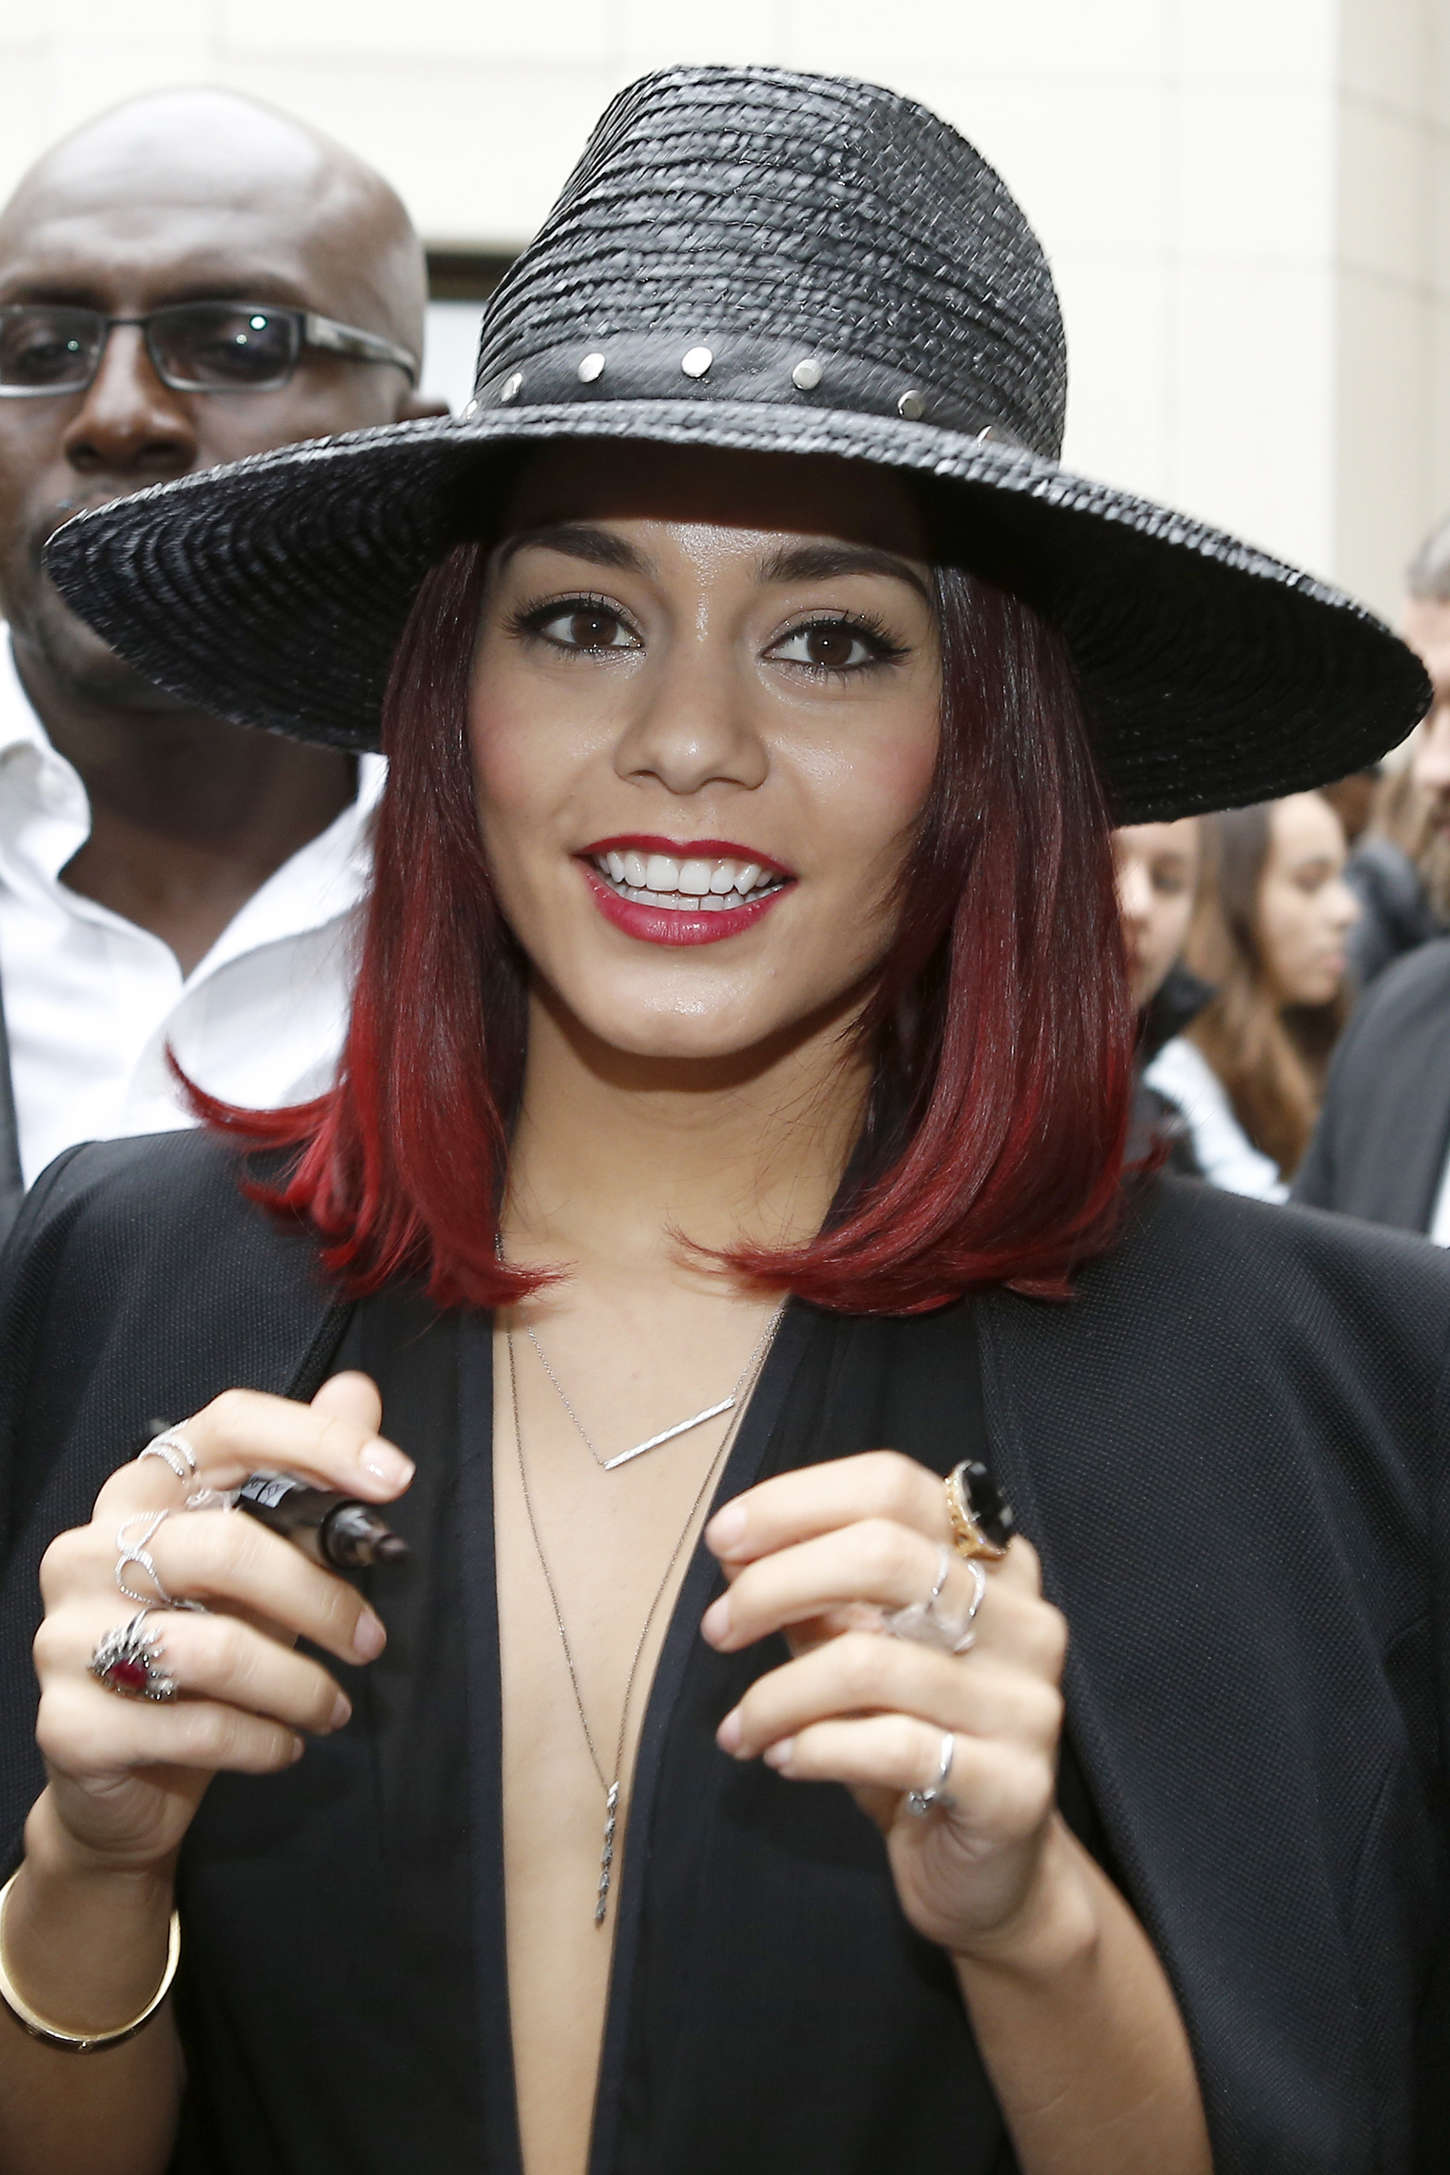 Vanessa Hudgens - greets fans as she heads into Fan2 in Paris